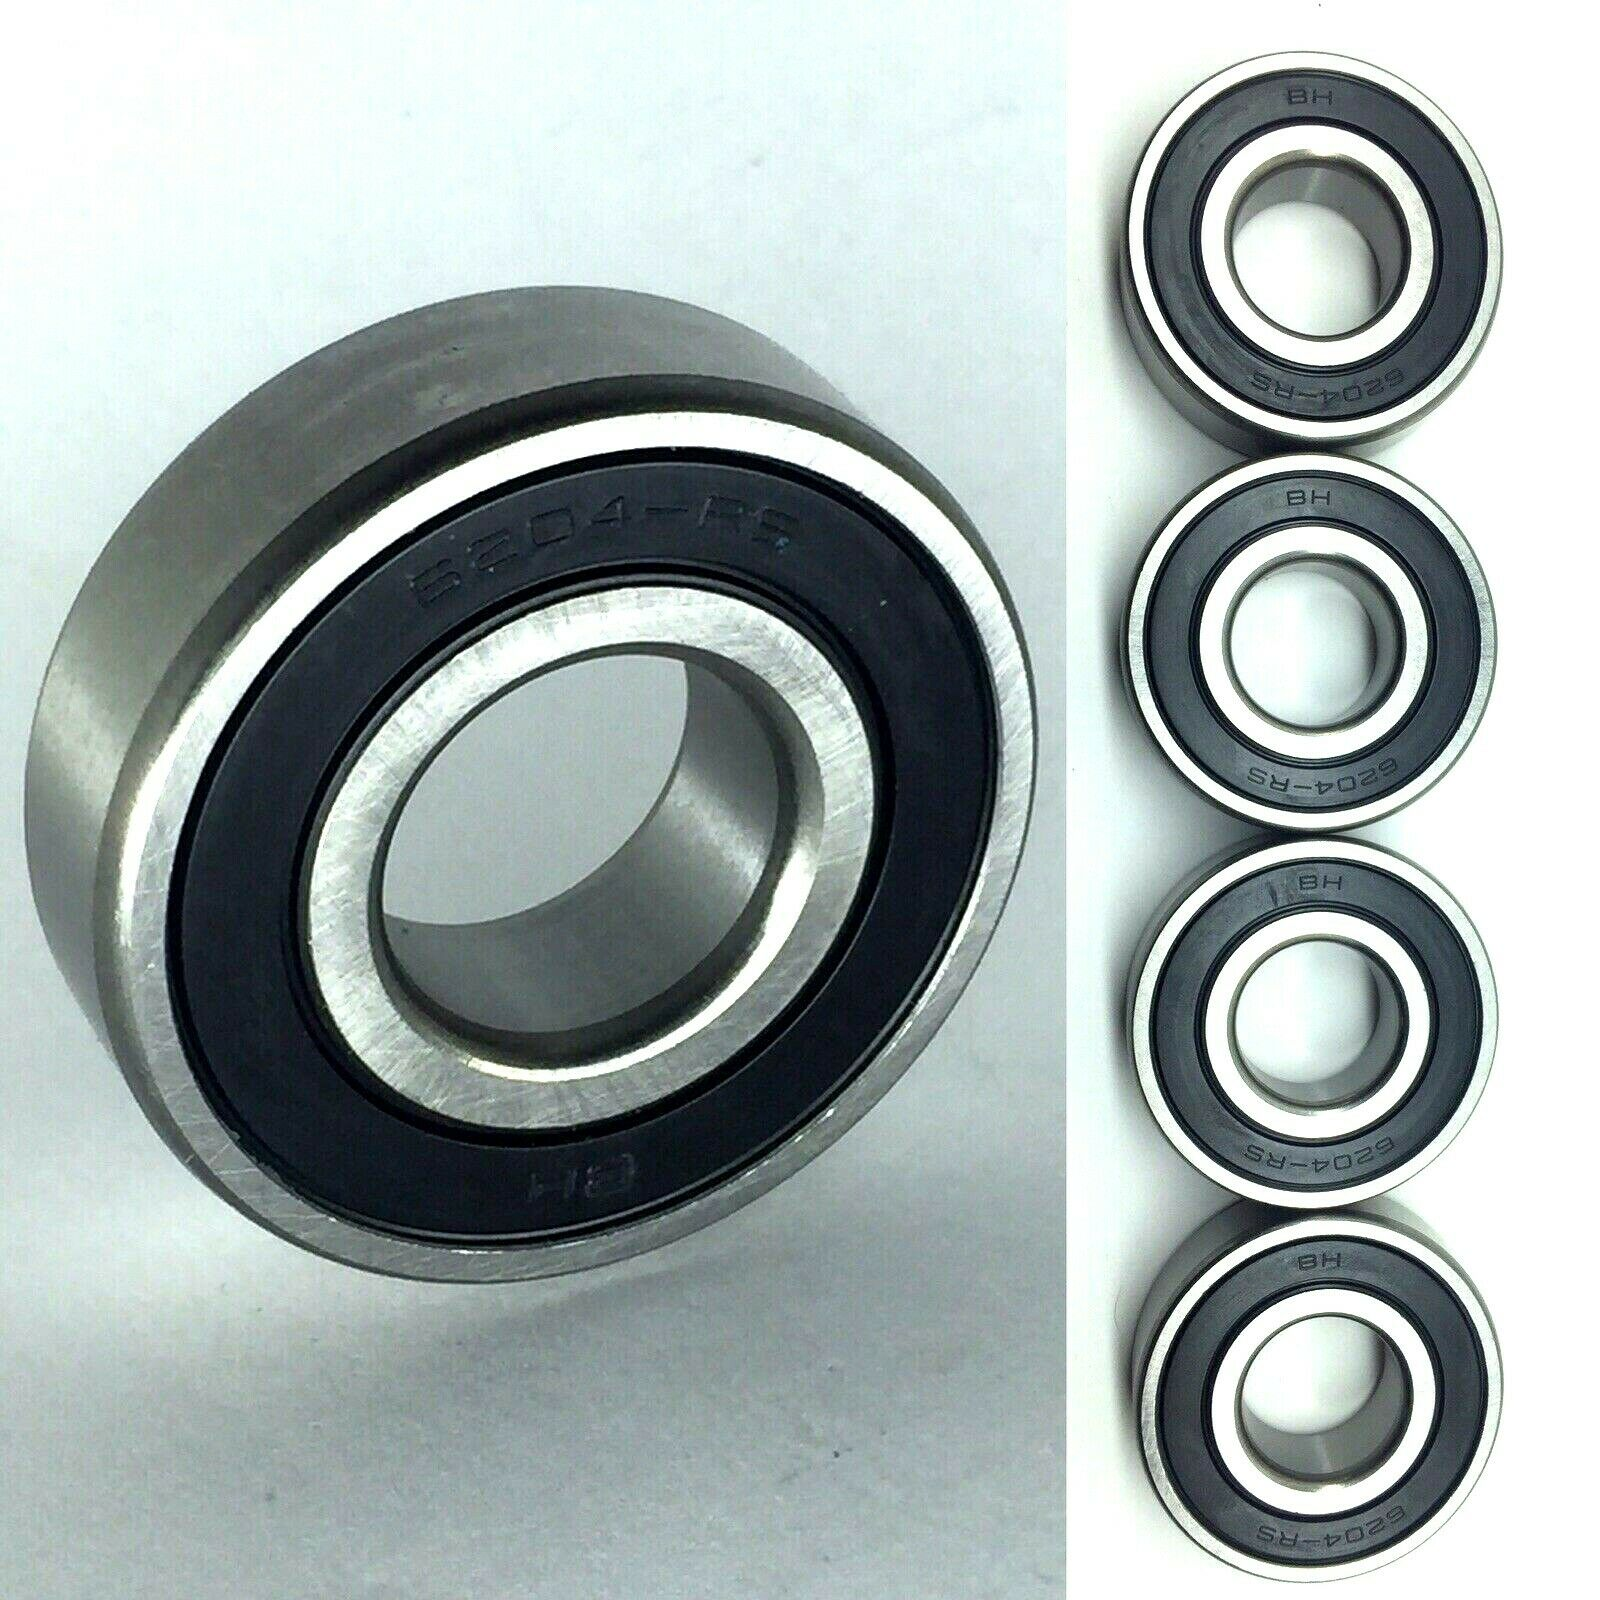 2 Side Rubber Seals Qty 10 6204-2RS Premium Sealed Ball Bearings 20x47x14